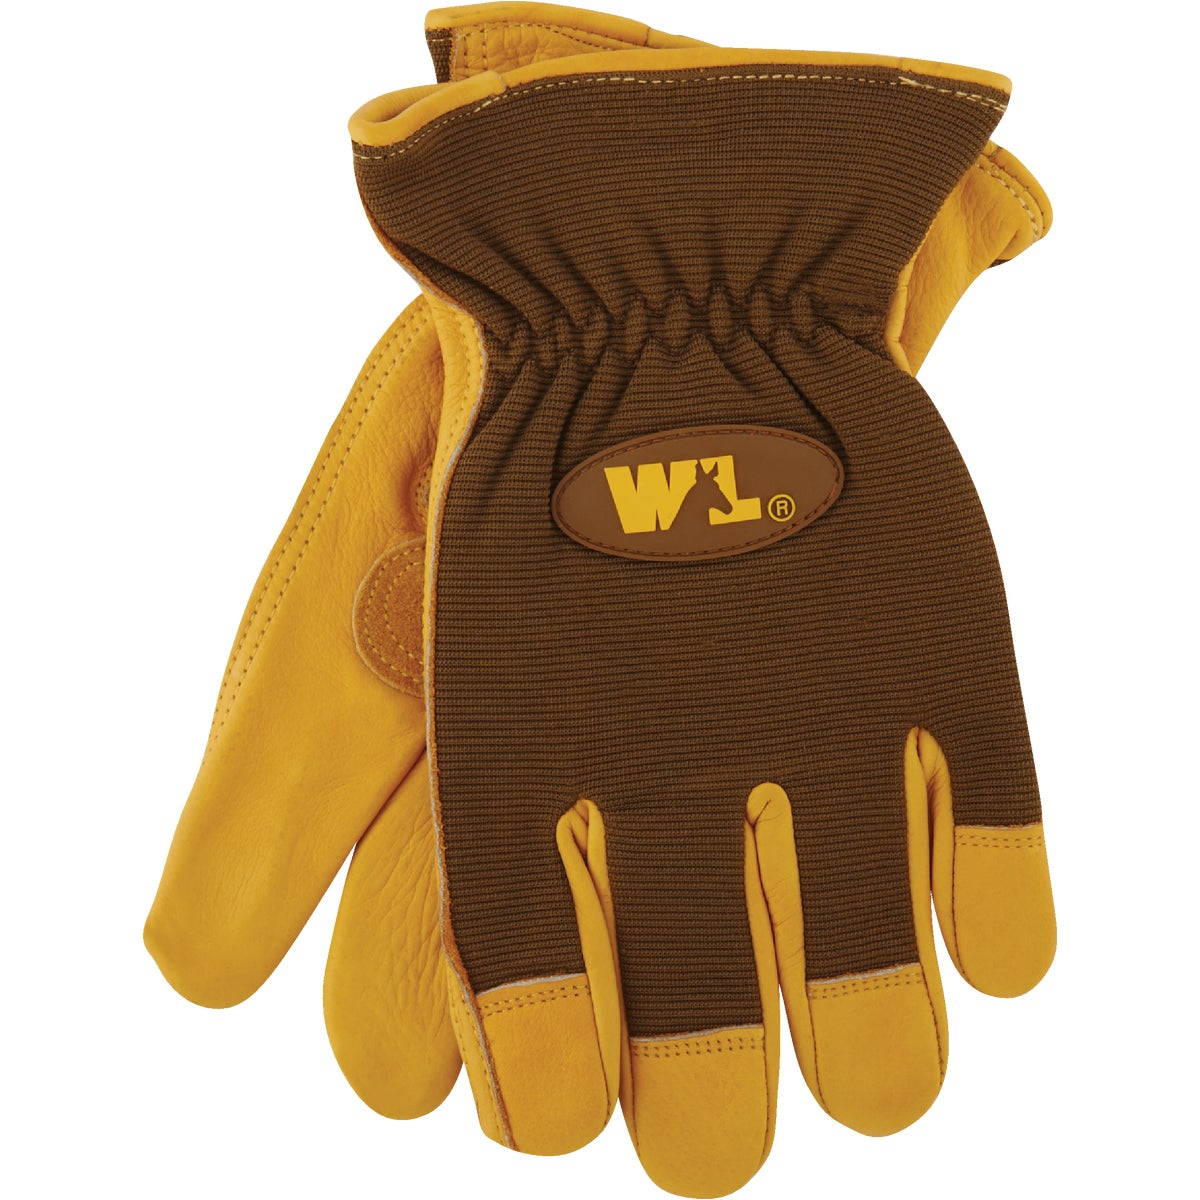 MED HD COWHID LTHR GLOVE - 1106M by Wells Lamont